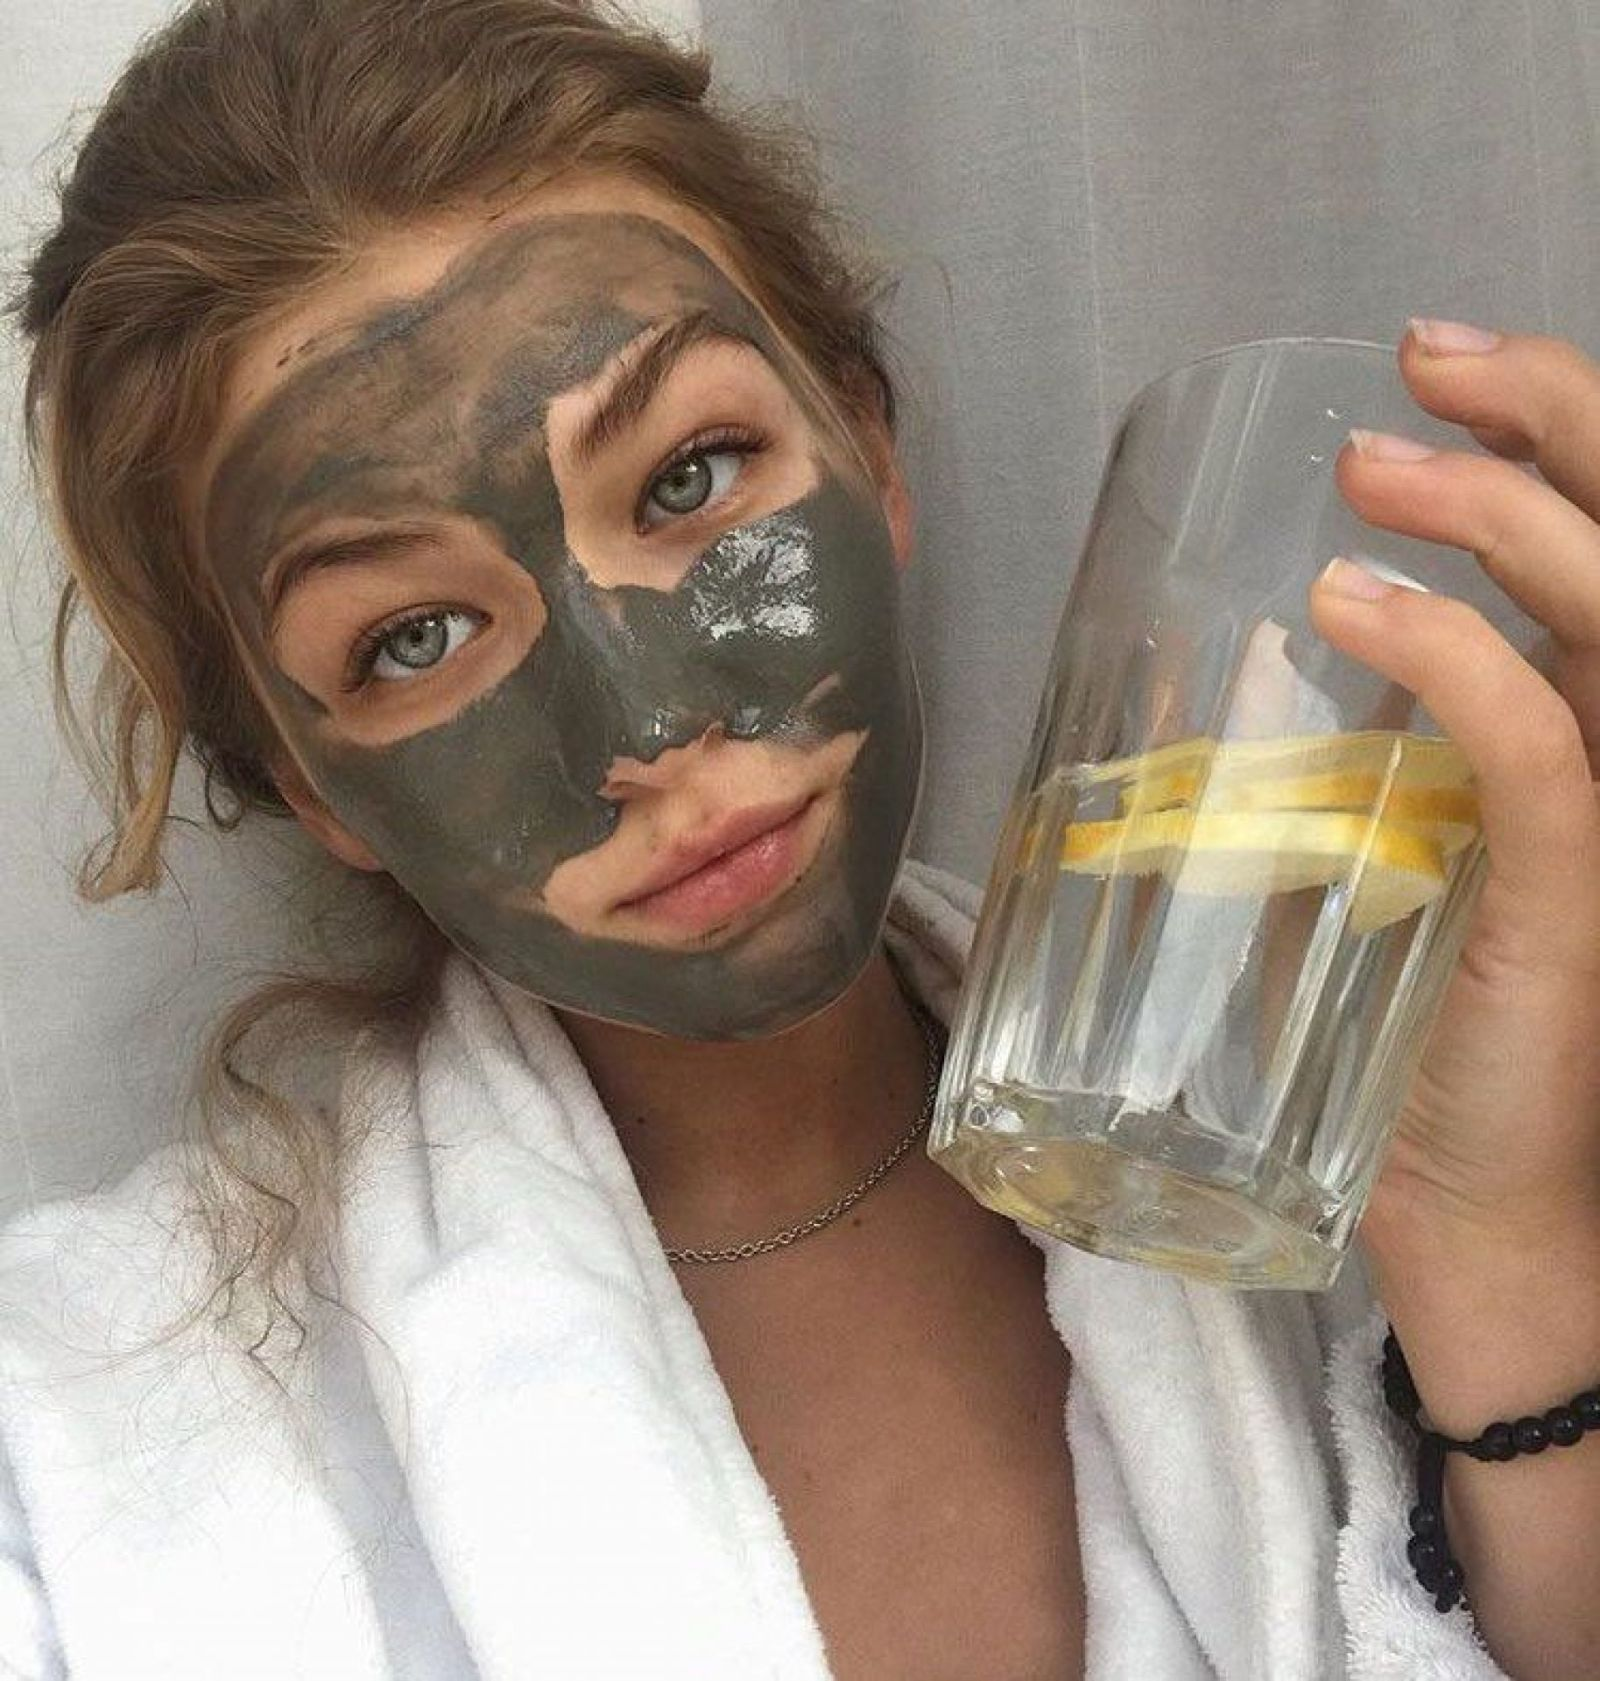 The Best and The Worst: Face Mask Edition